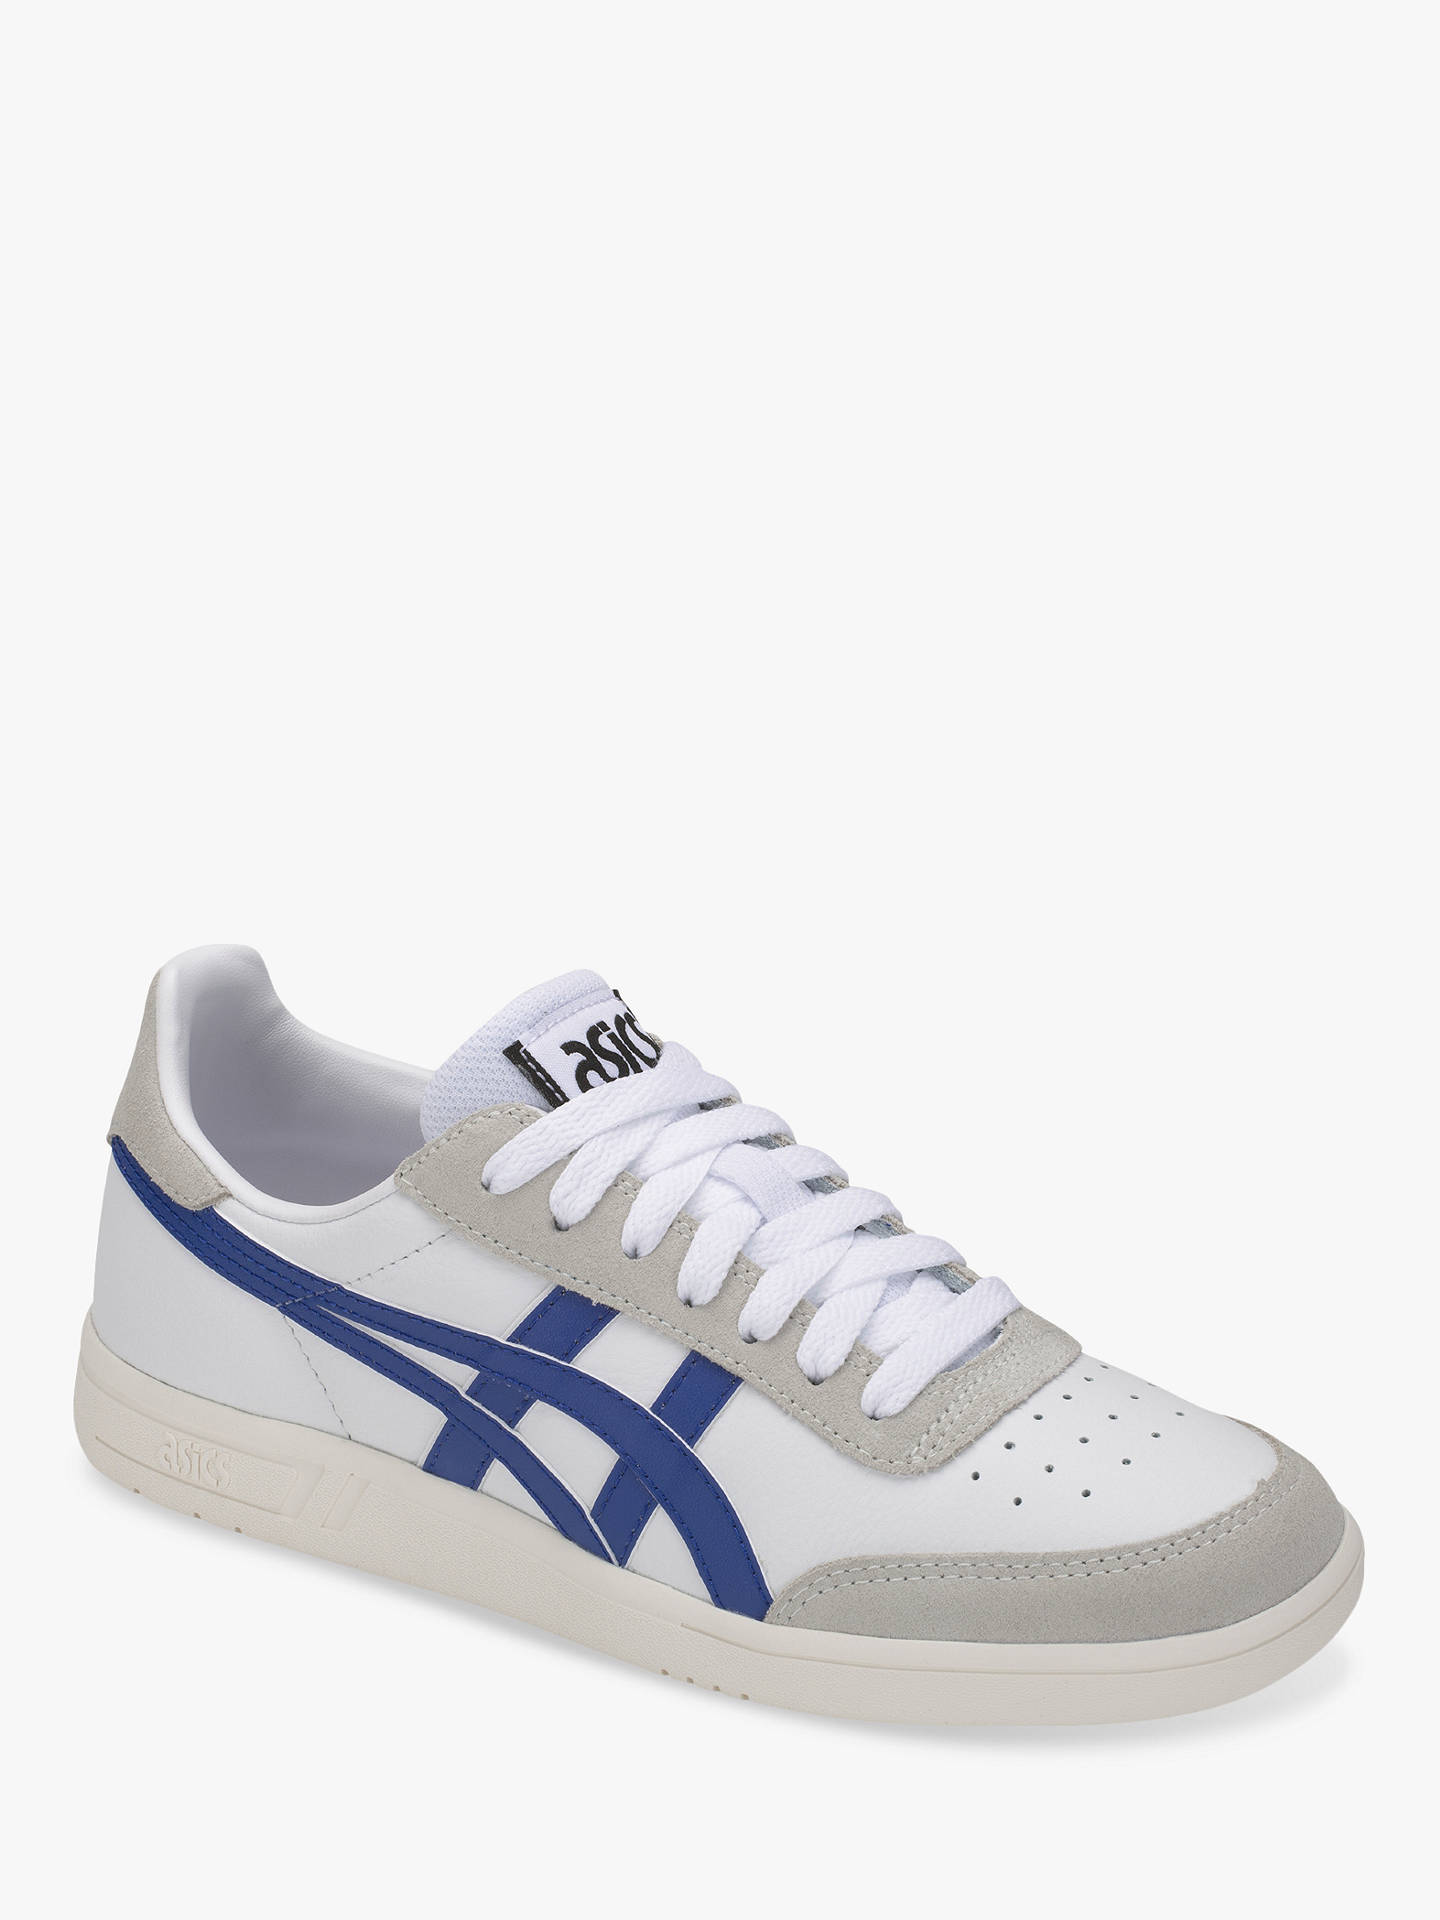 BuyASICSTIGER GEL-VICKKA Trainers, White/Asics Blue, 9 Online at johnlewis.com